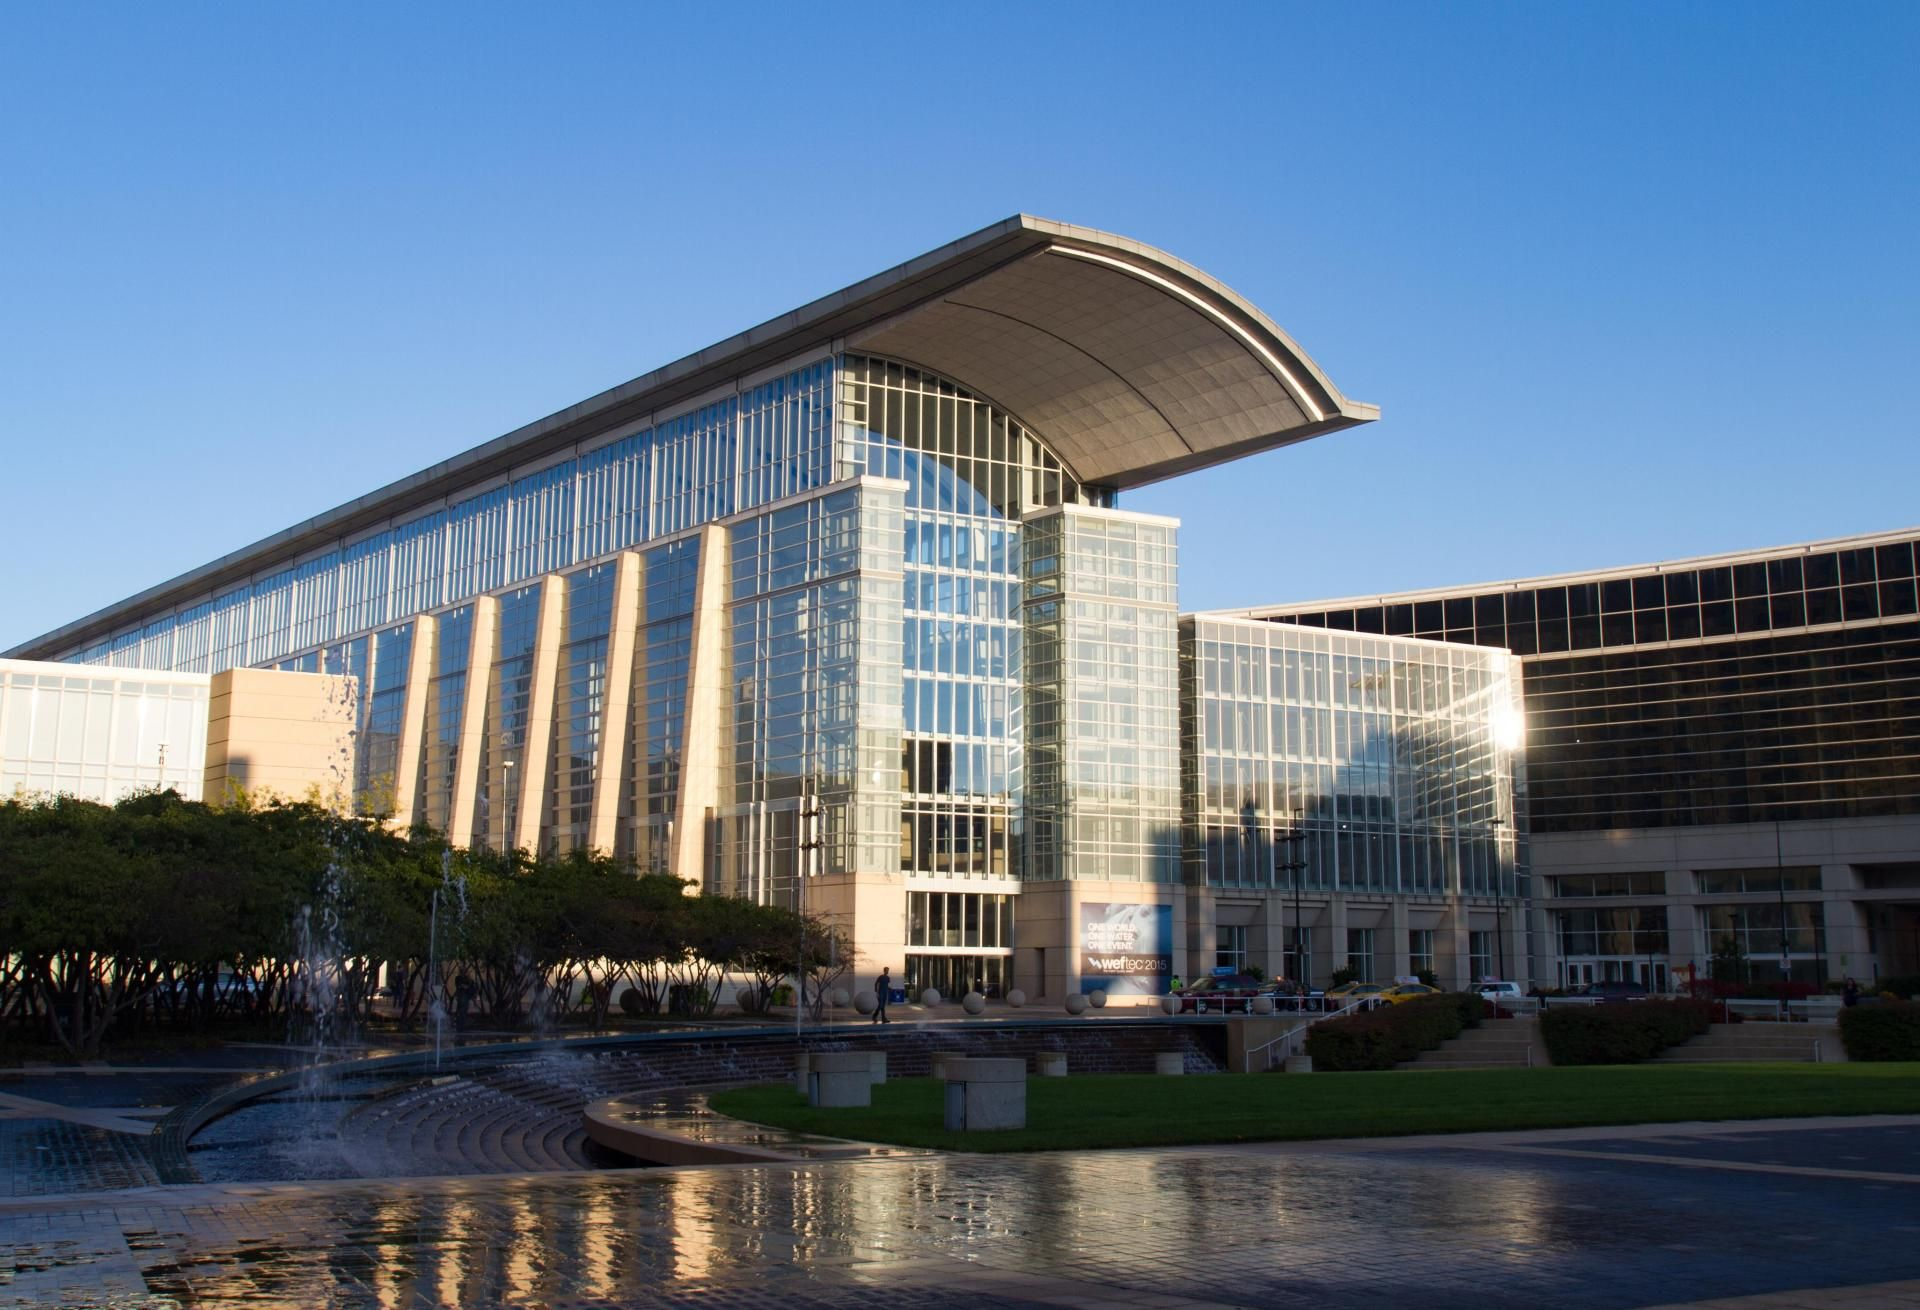 McCormick Center Loses Another Major Convention As Coronavirus Worries Grow